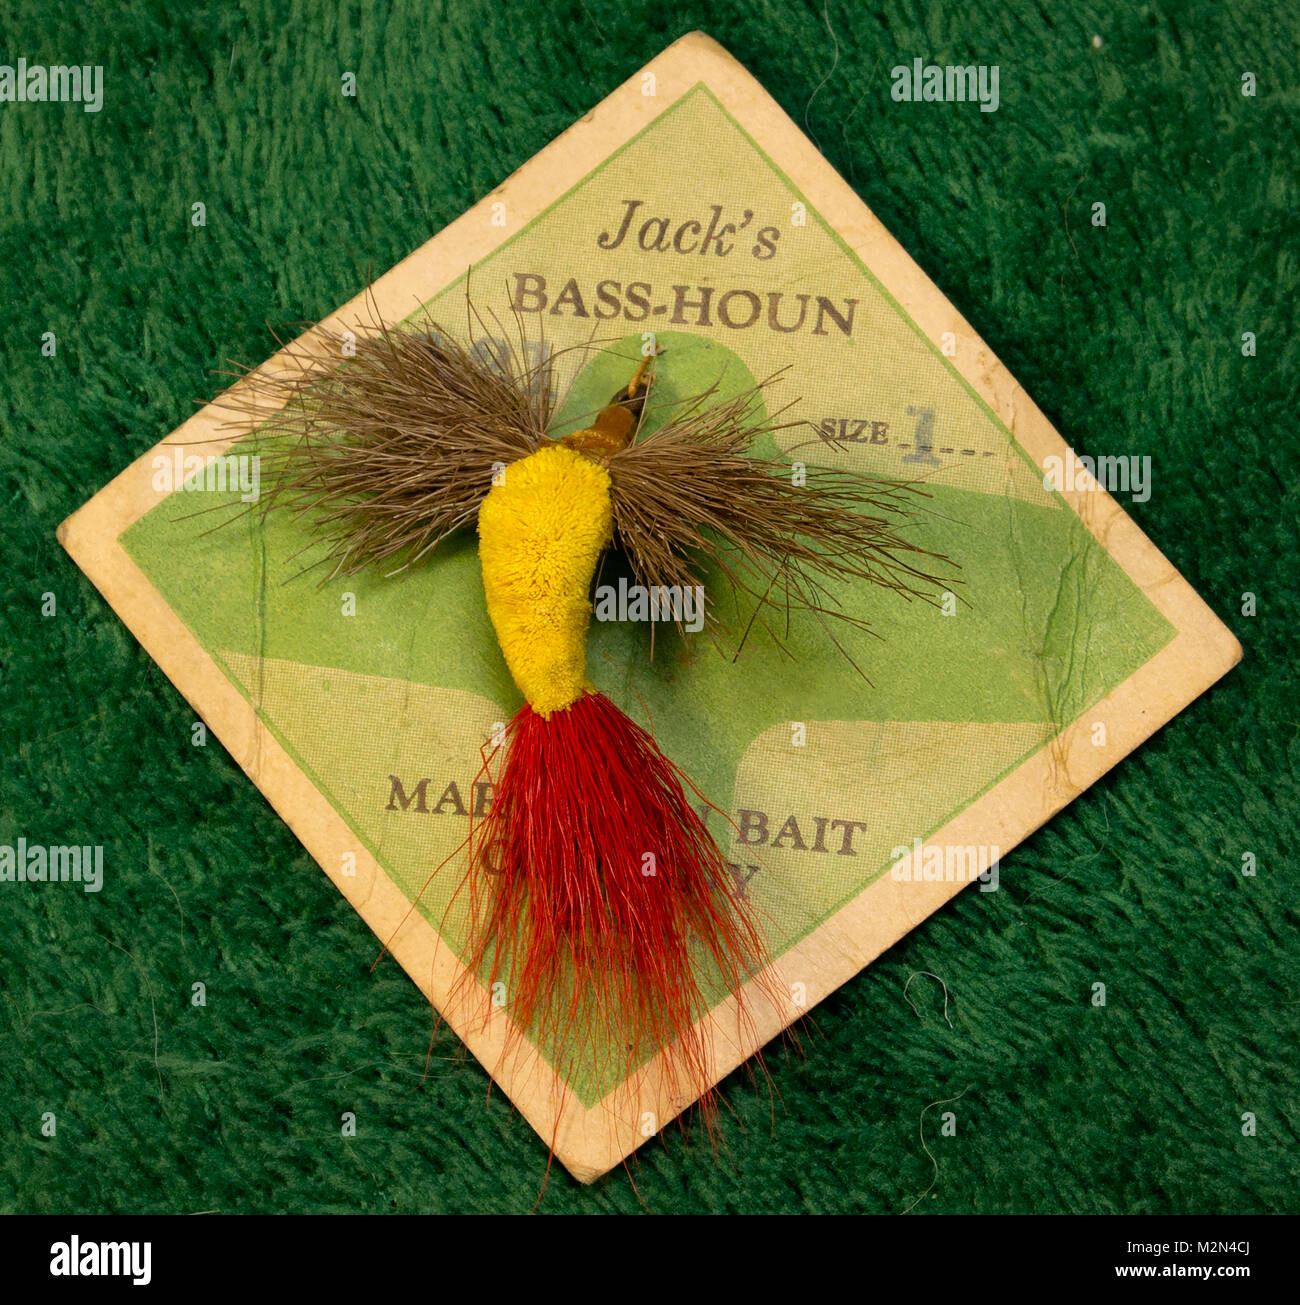 Jack's Bass-Houn,   a large deer hair floating fly, made by Marathon Bait Company, in Wausuau, Wisconsin.   Hook: Stock Photo